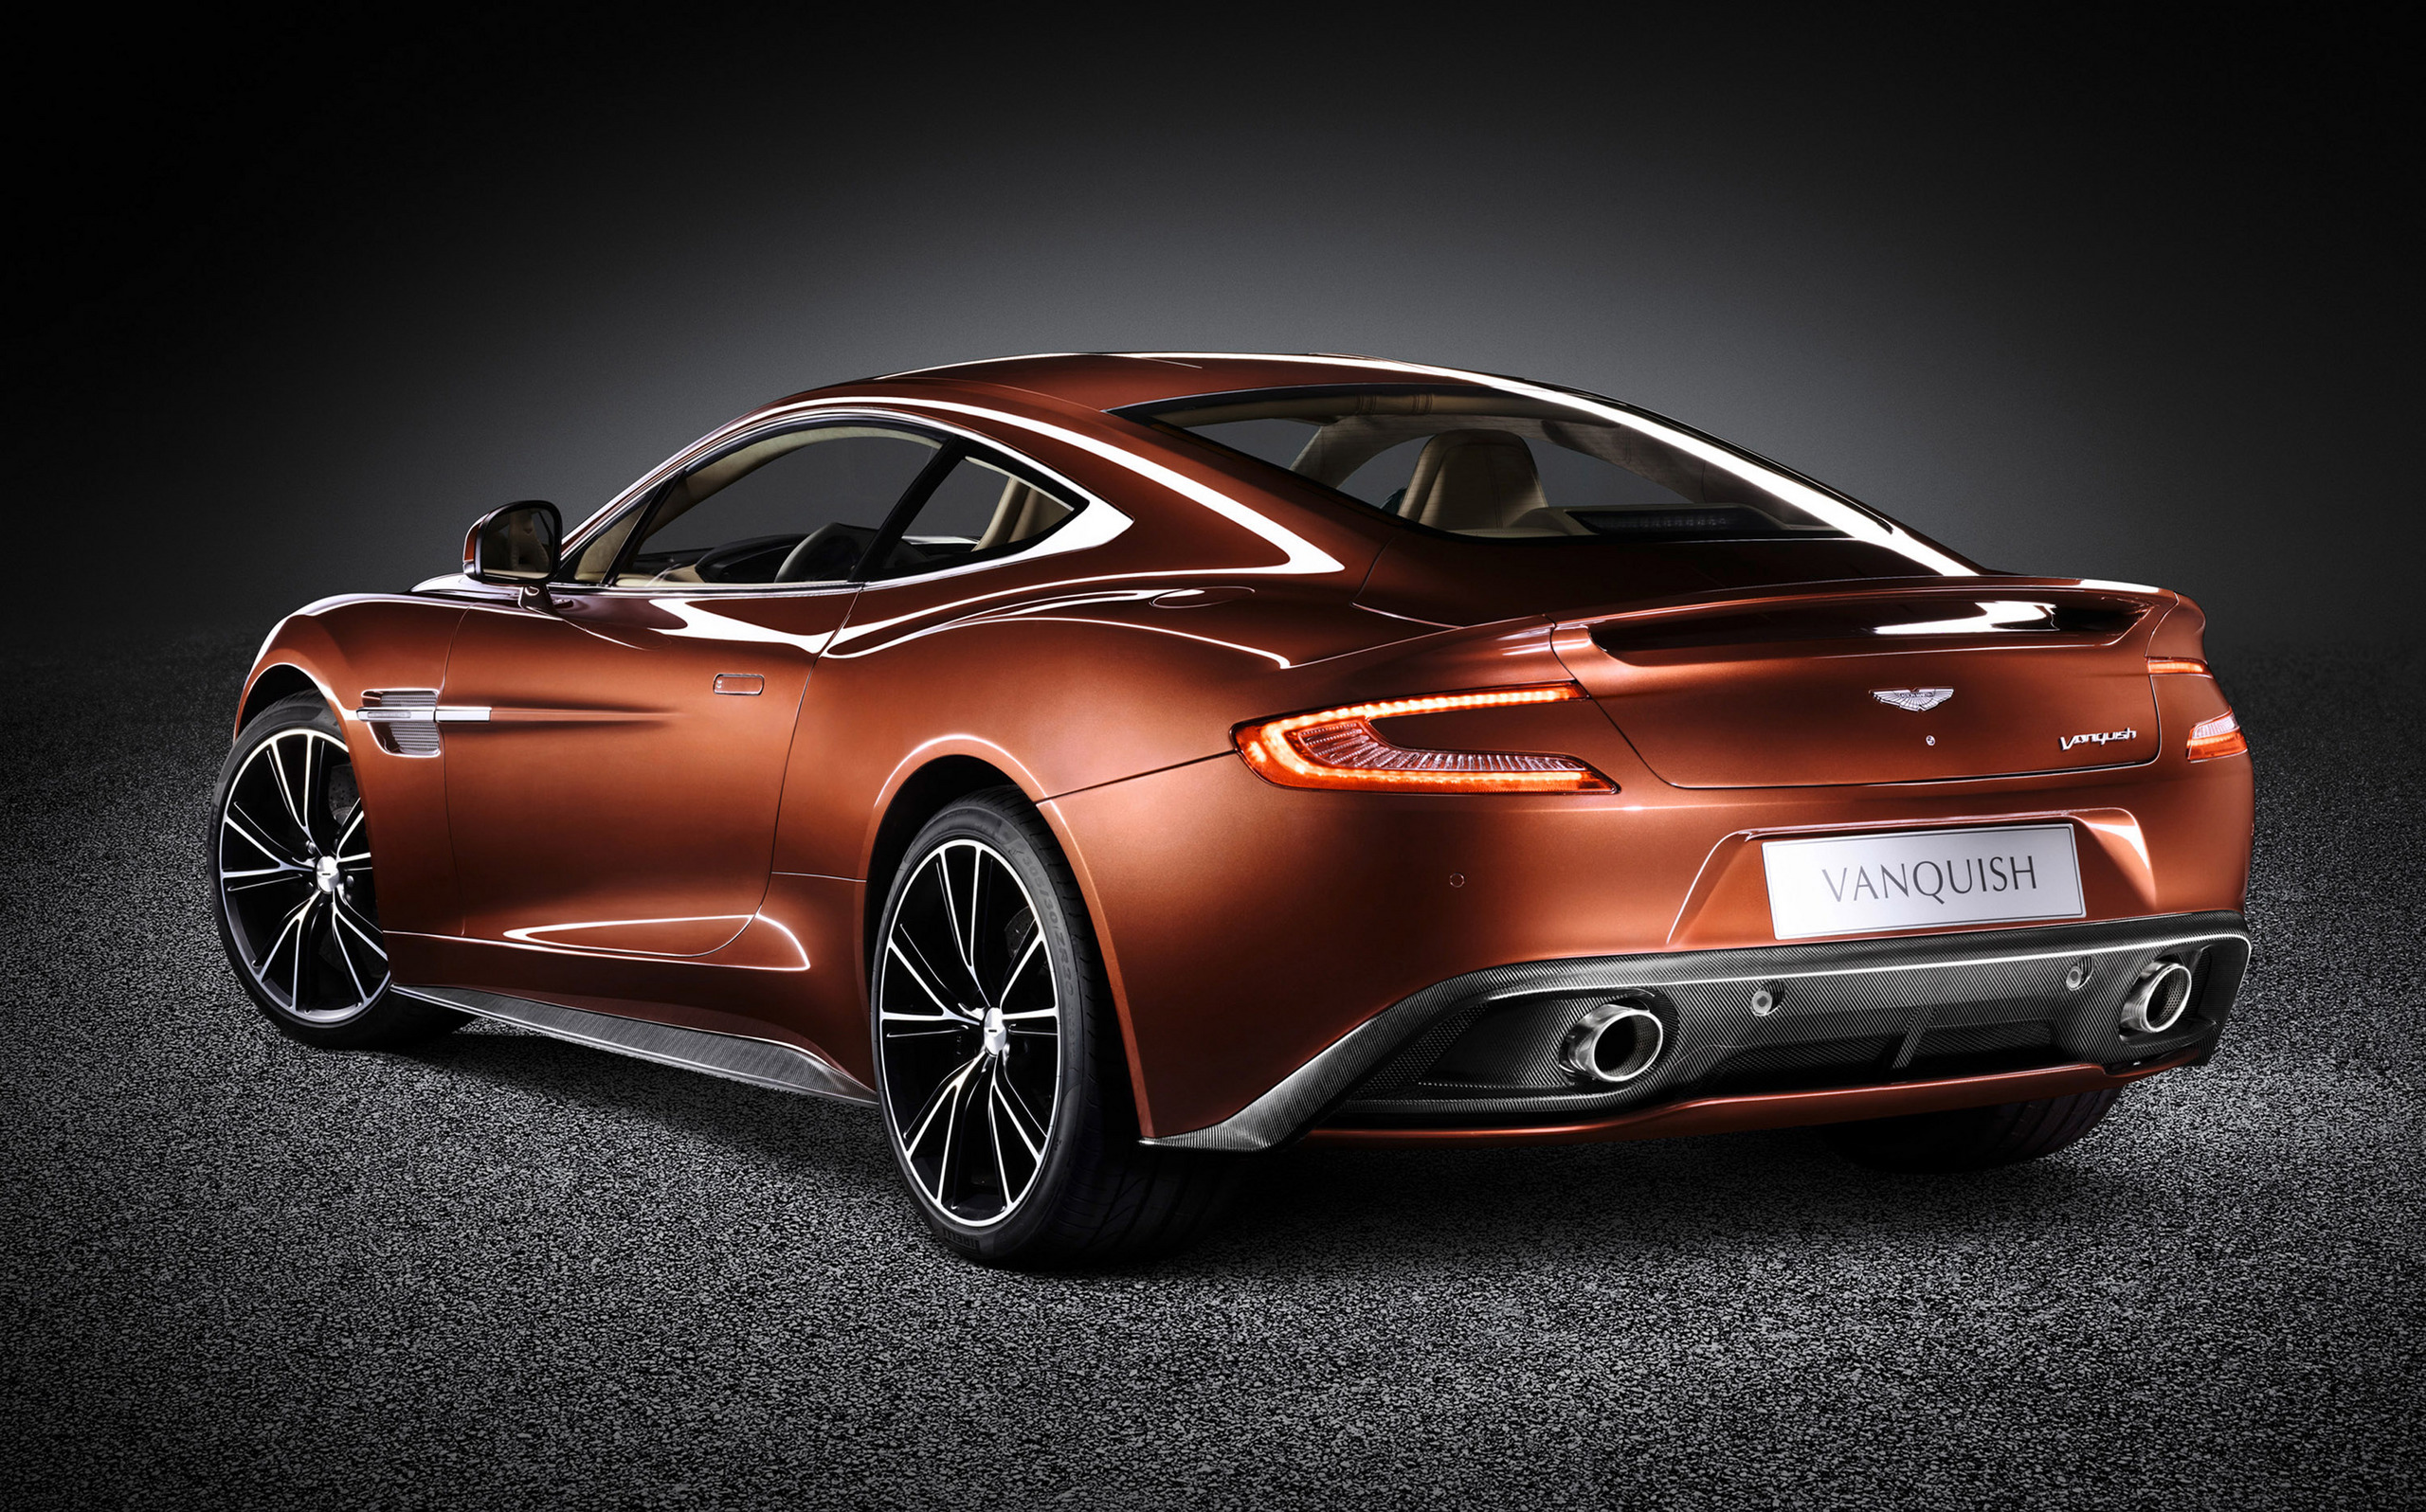 Sports Cars Images ASTON MARTIN VANQUISH HD Wallpaper And Background - Aston martin sports car